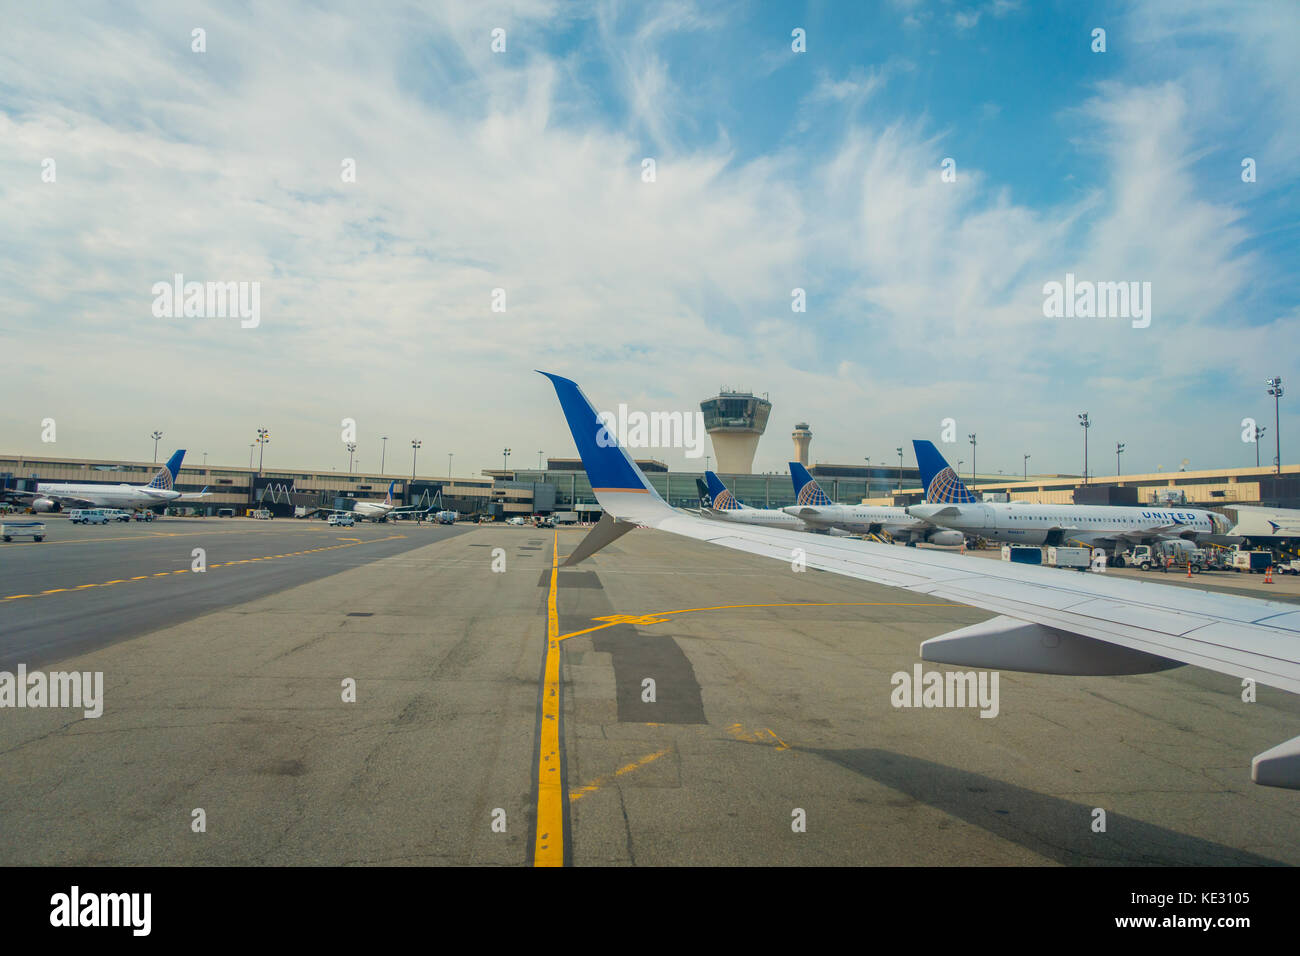 NEWARK, NJ - OCTOBER 16, 2017: United Airlines Logo on airplane tail wing at airport in Newark, New Jersey. United - Stock Image